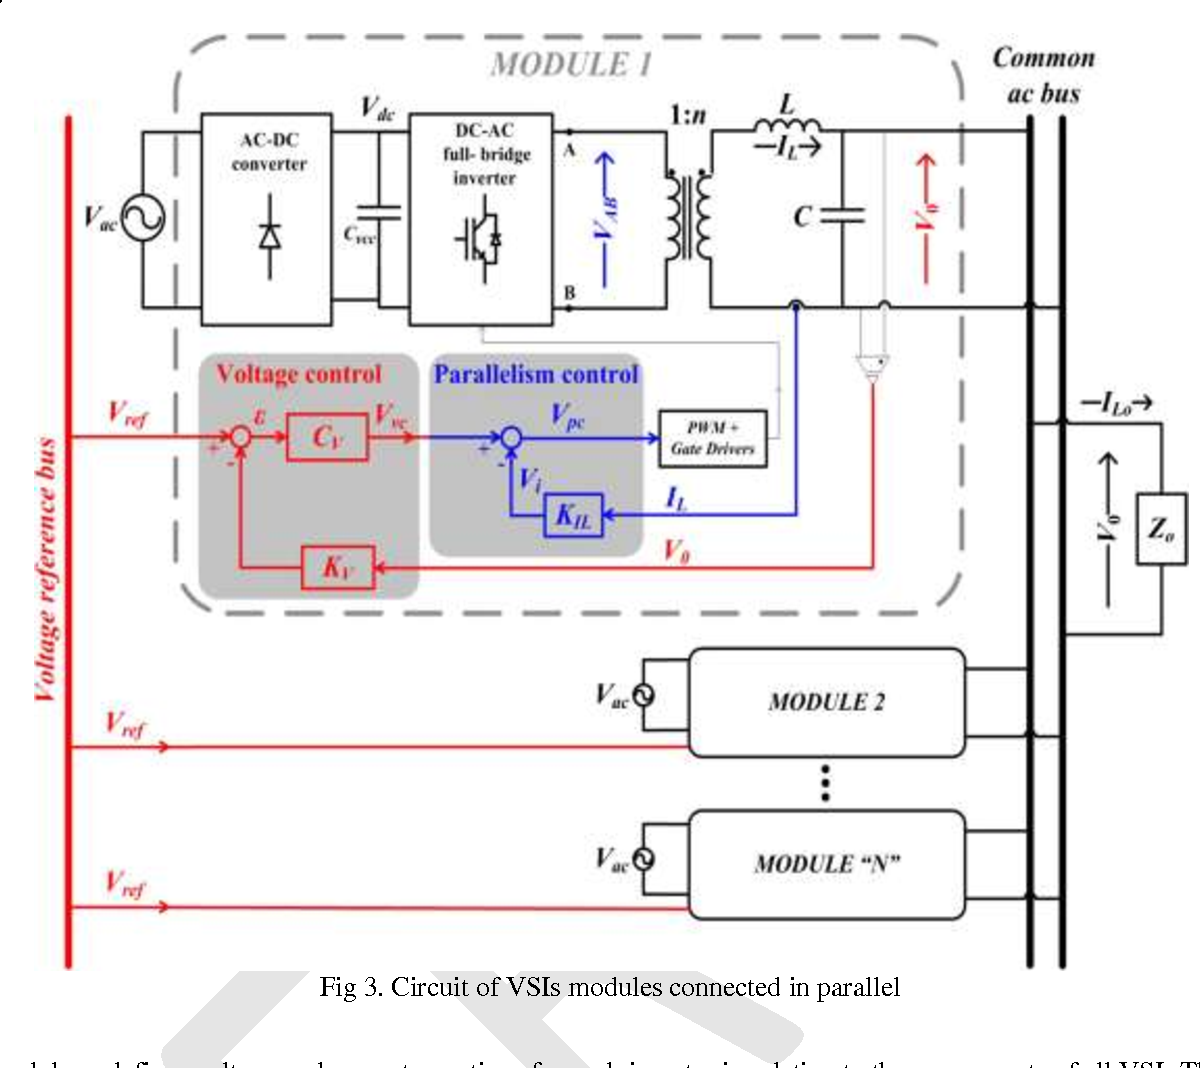 Figure 3 From Optimized Implementation Of Ann Control Strategy For Constantcurrentsourceconverter Basiccircuit Circuit Diagram Vsis Modules Connected In Parallel